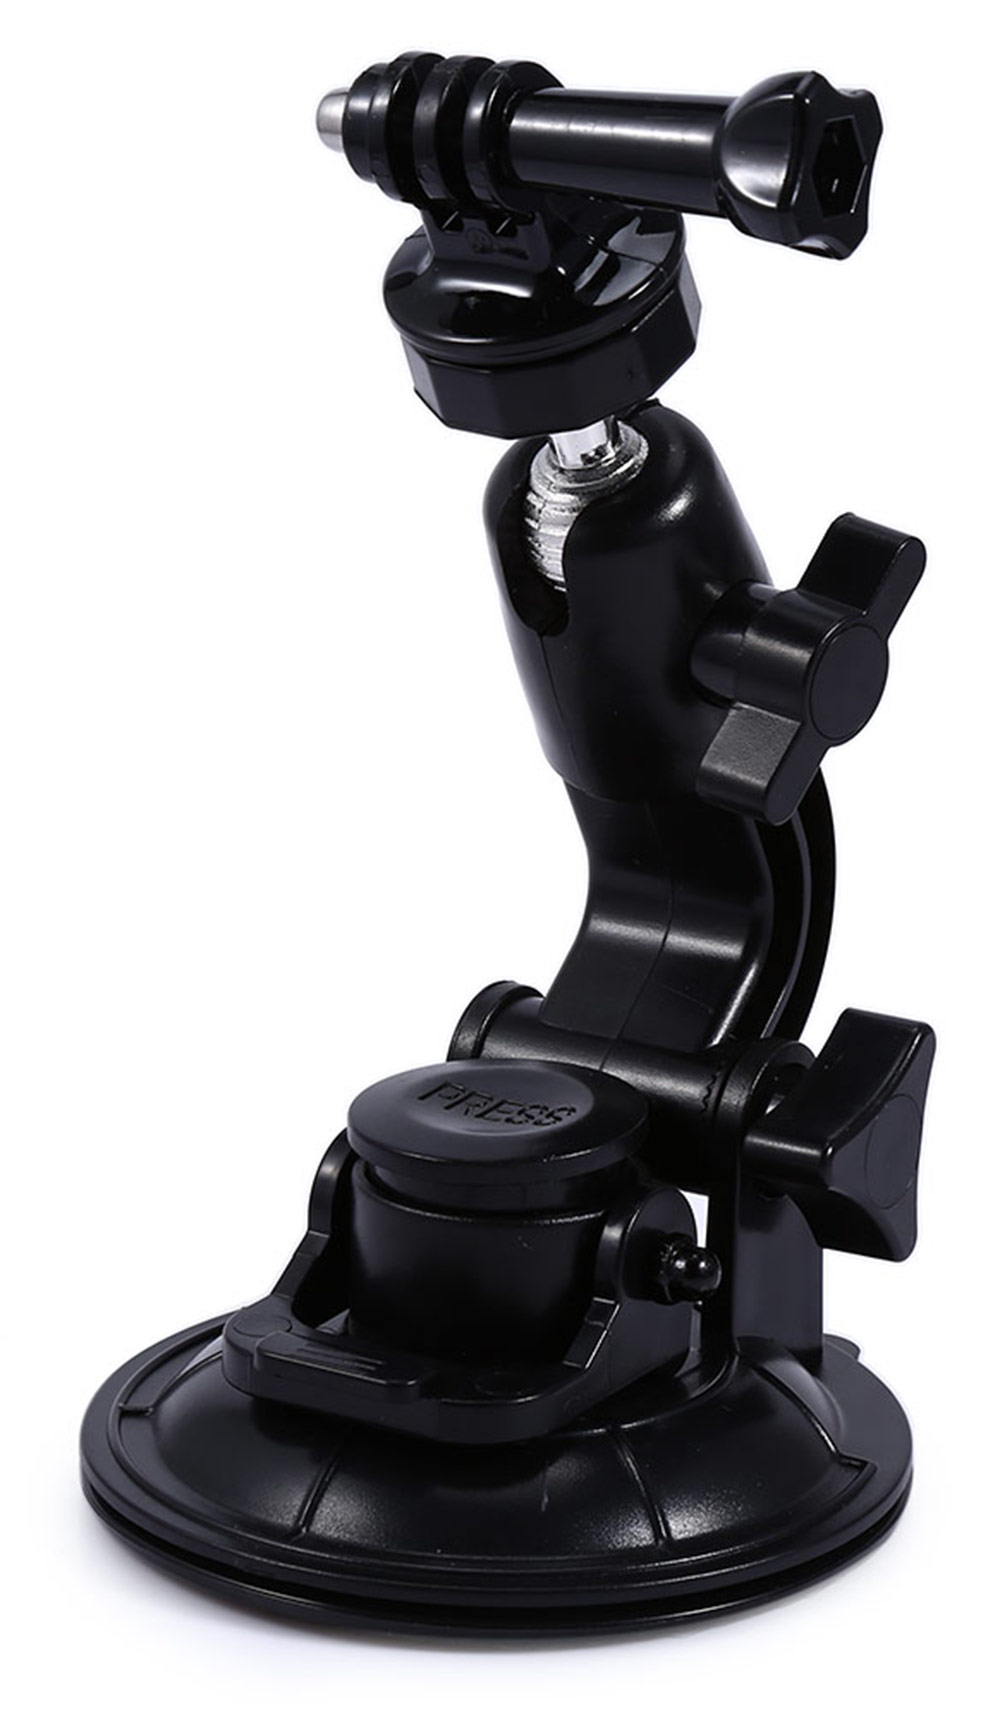 360 Degree Adjustable Suction Cup Mount for GoPro HERO 4 / 3+ / 3 / 2 / 1 SJ4000 Xiaoyi